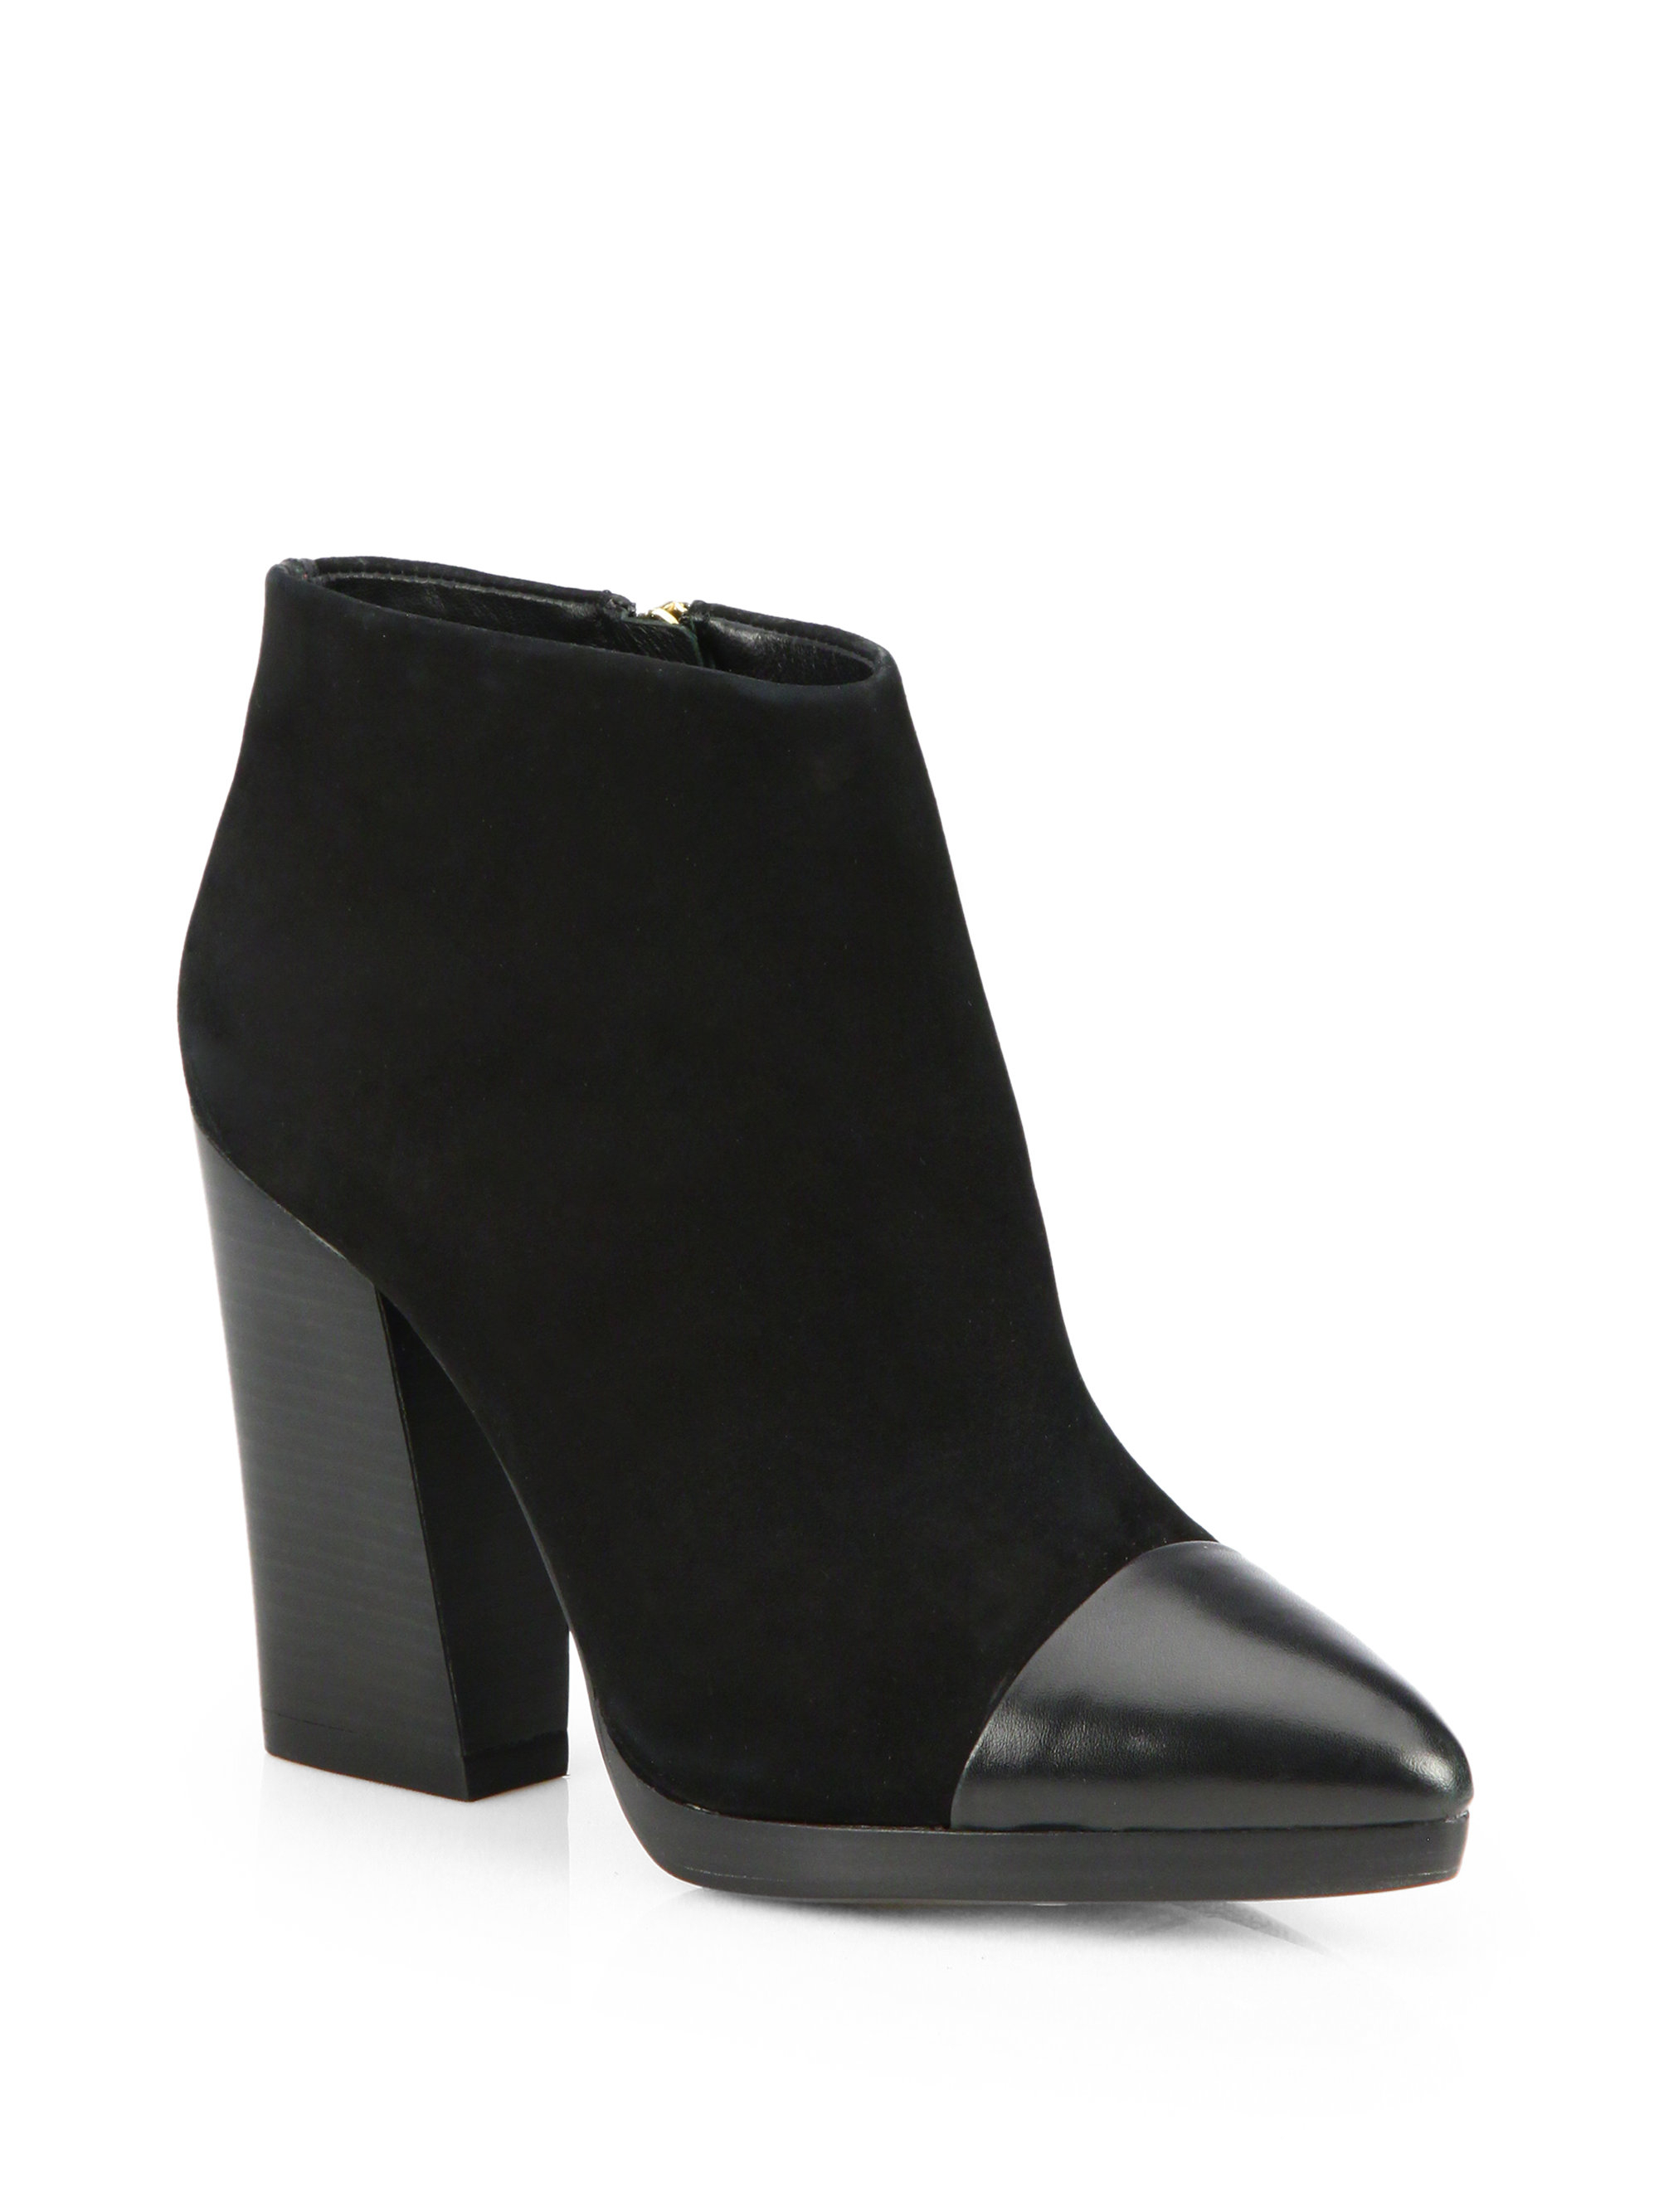 burch rivington suede platform ankle boots in black